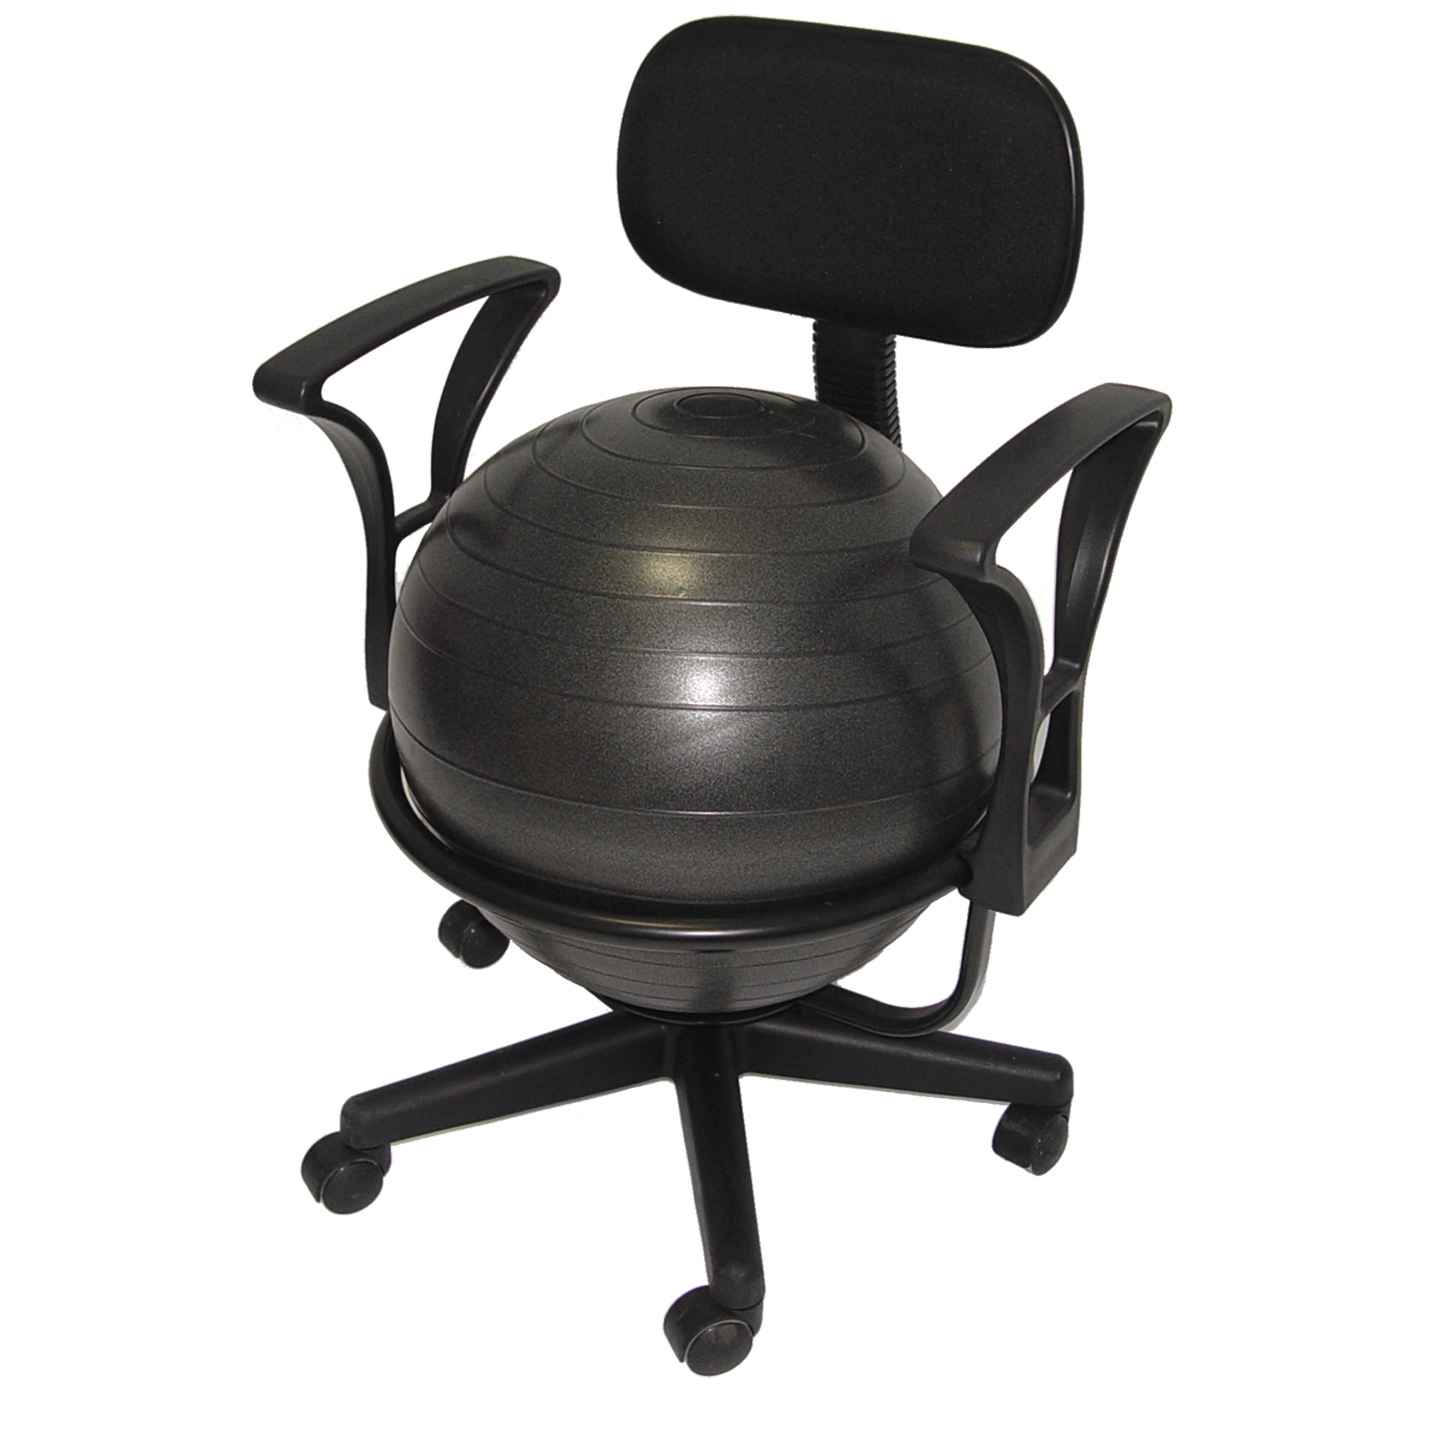 Pilates Ball Chair Ergo Ball Chair For Home Office